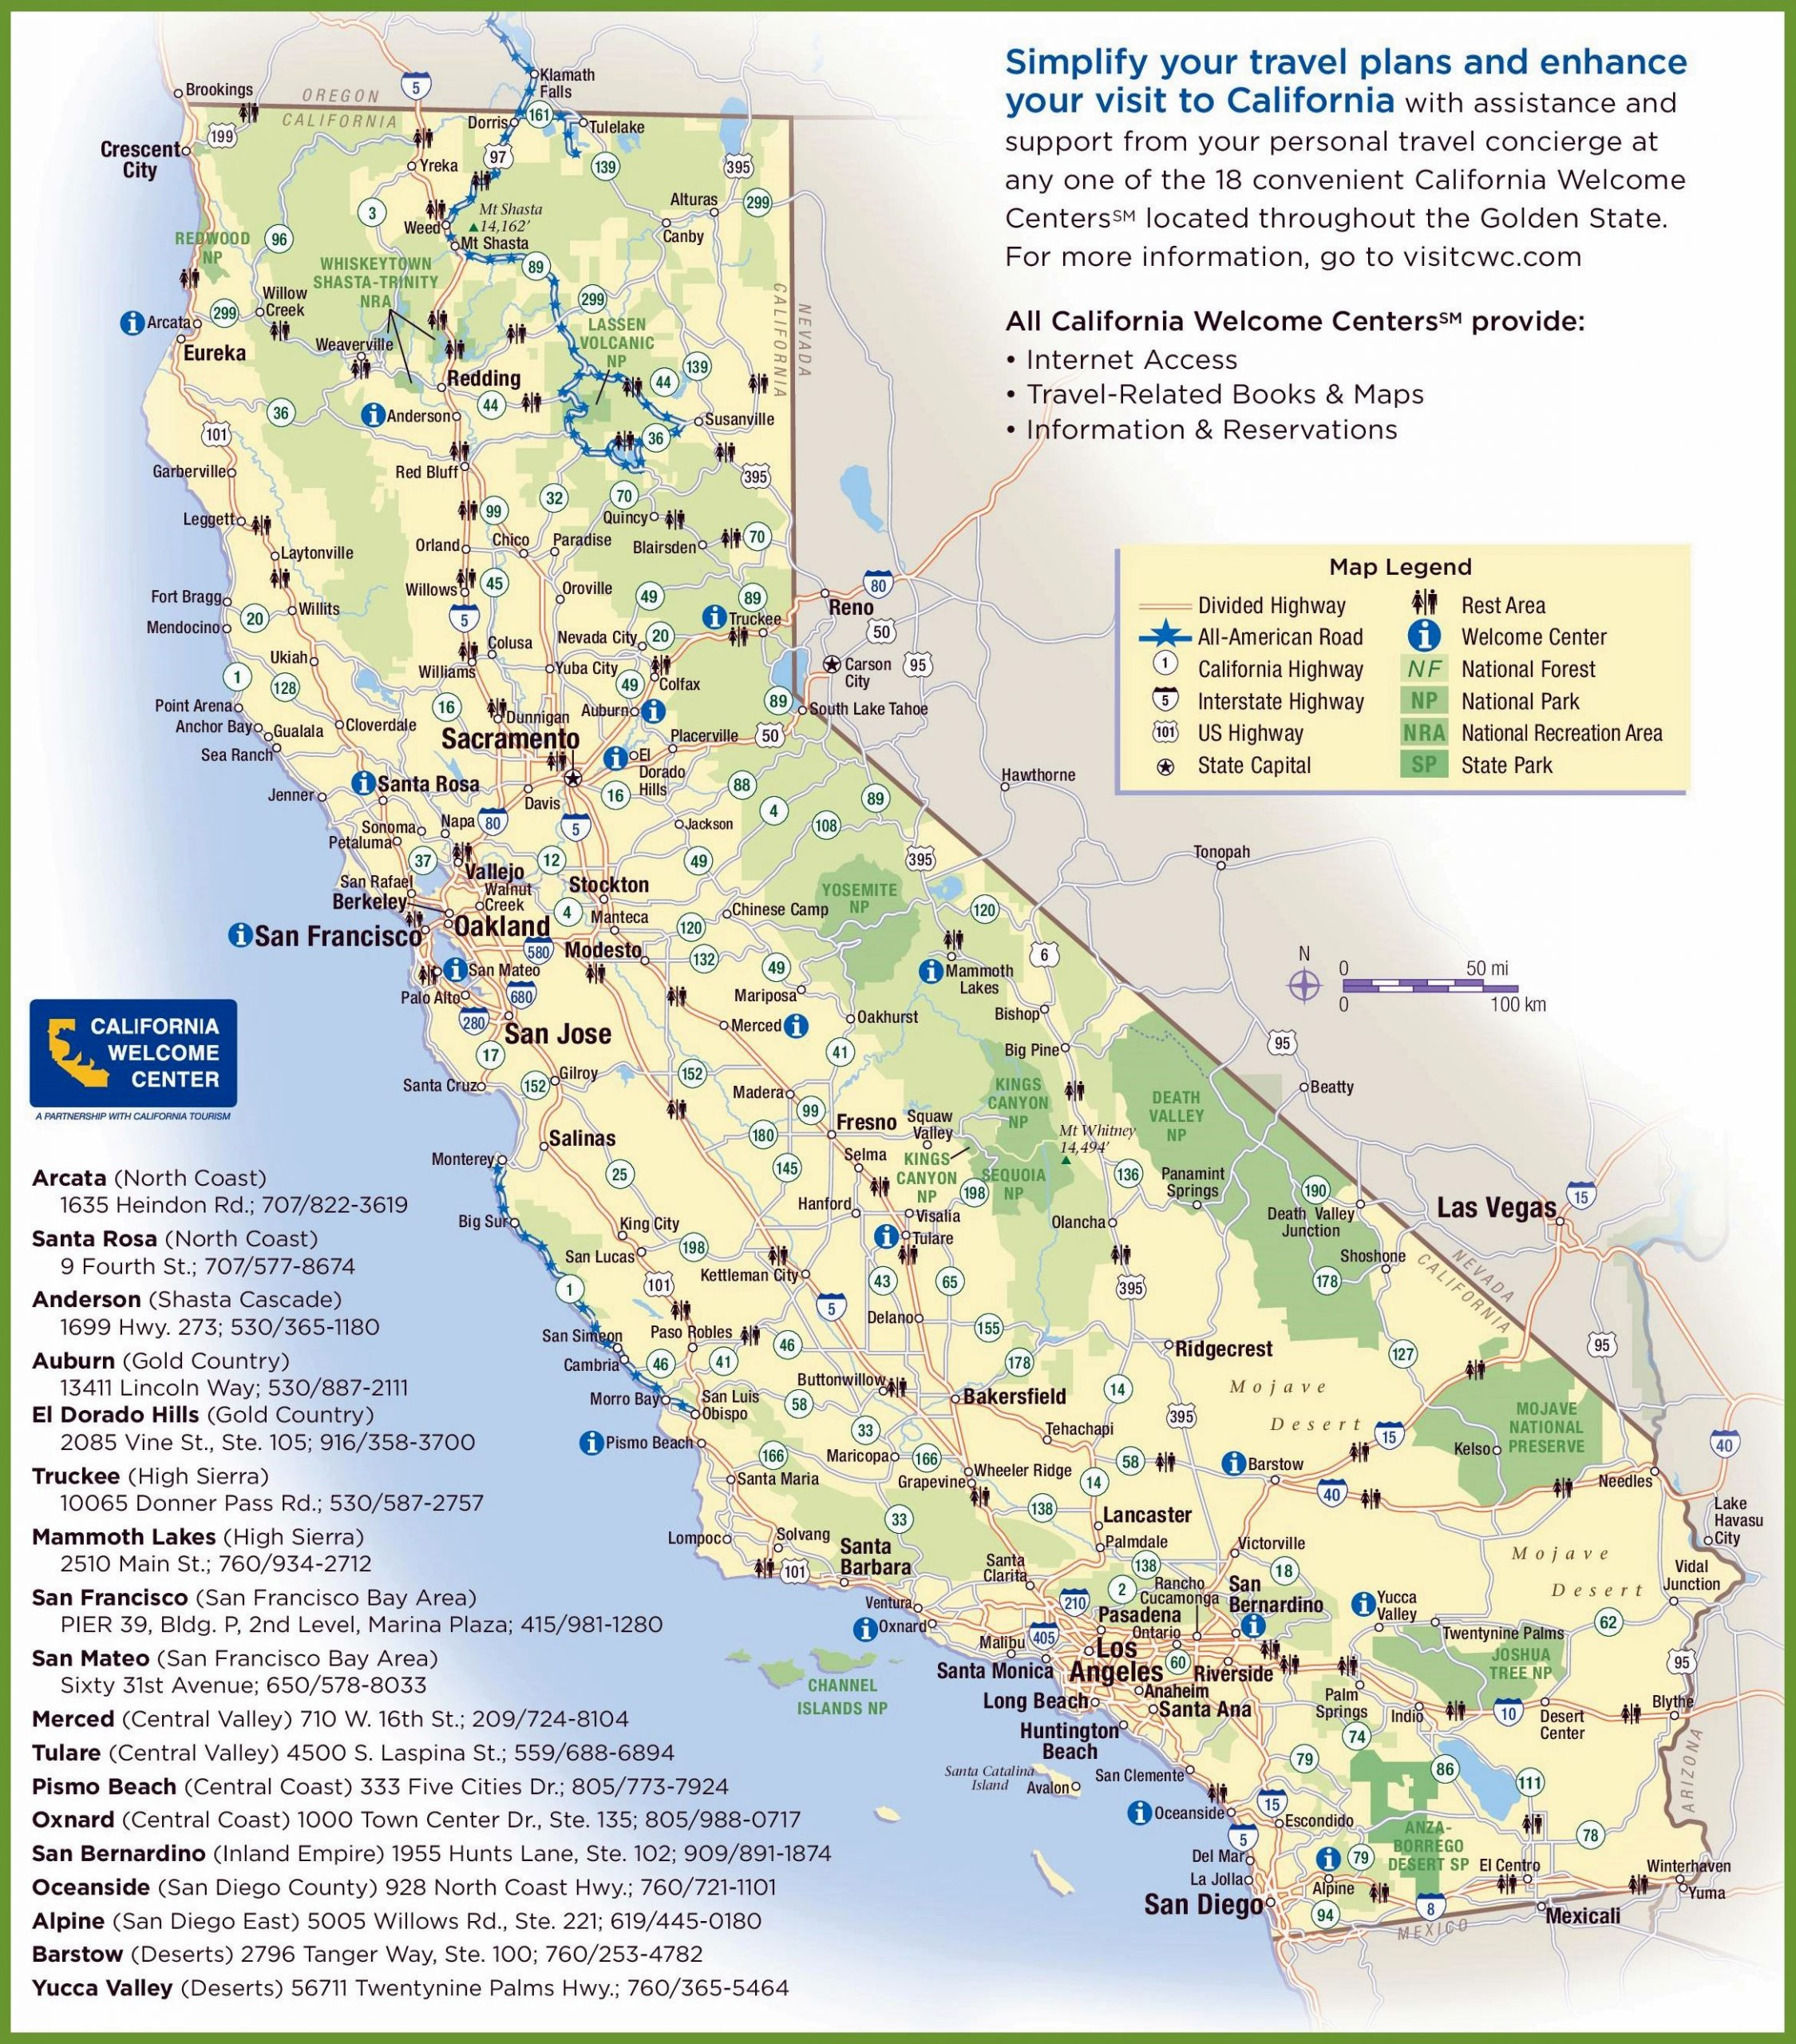 Large California Maps For Free Download And Print | High